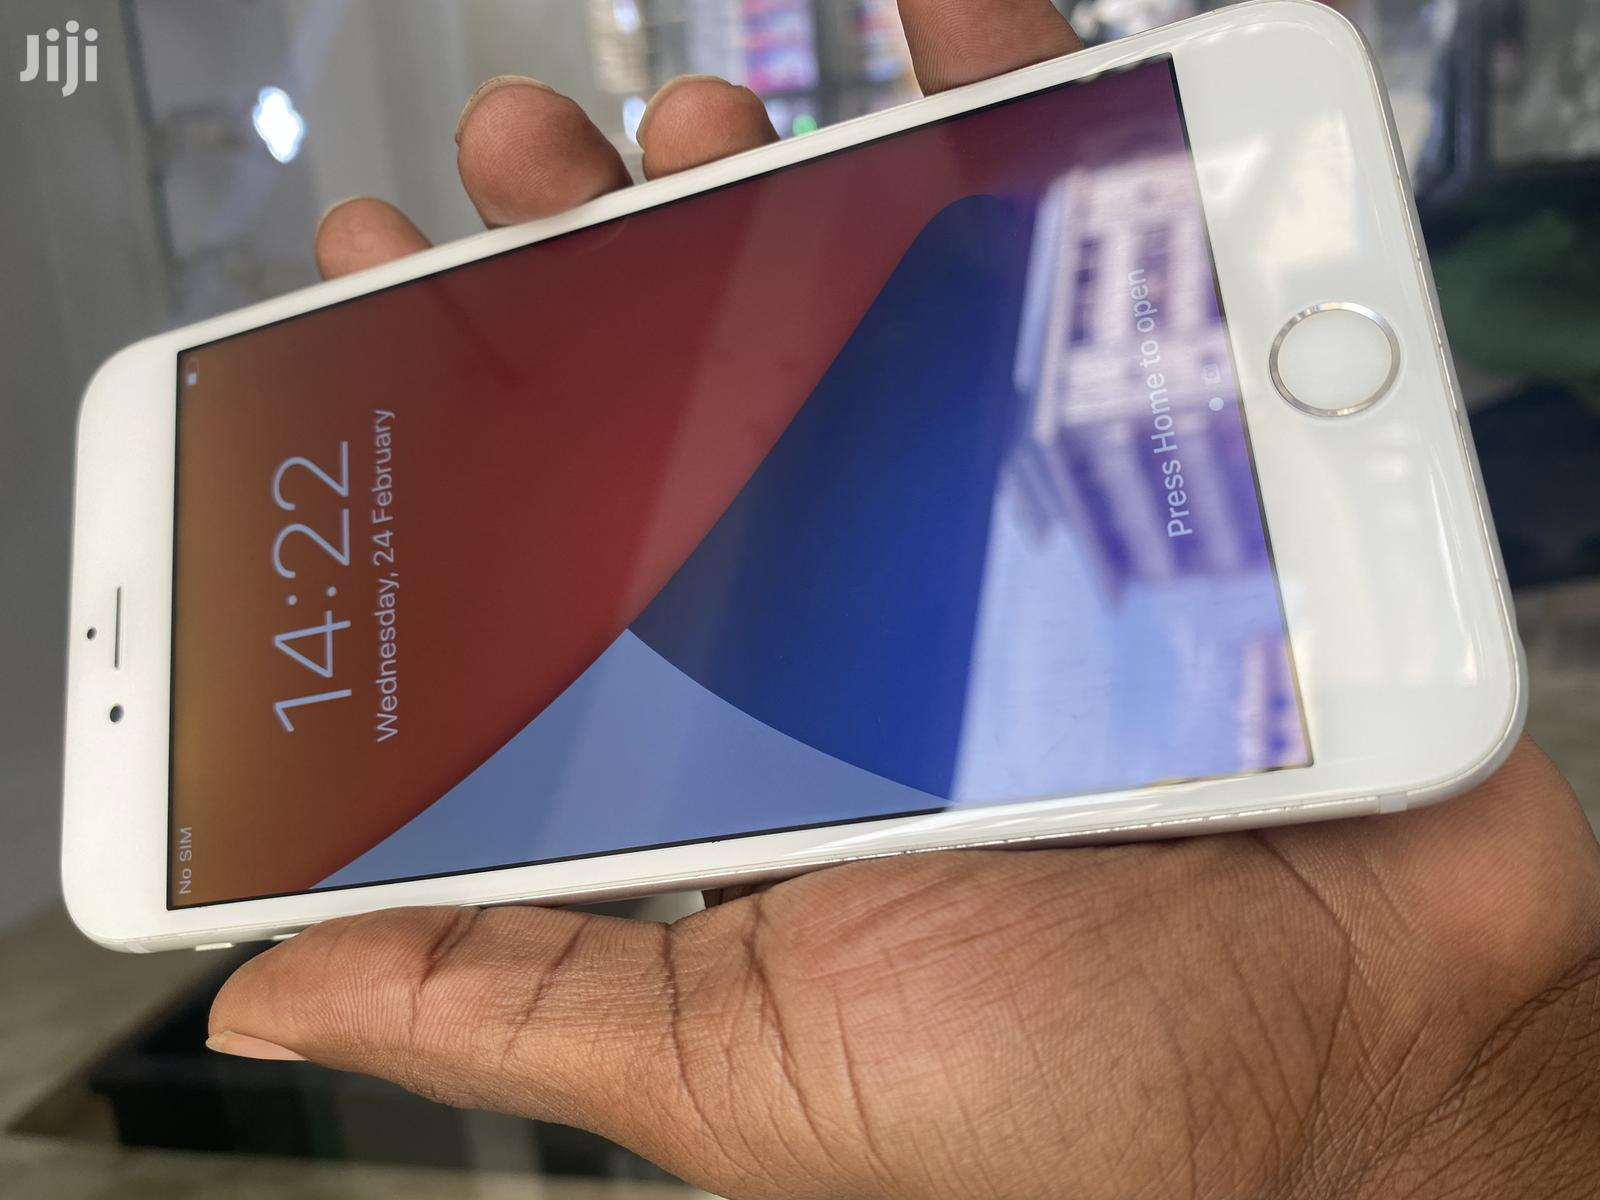 Archive: Apple iPhone 6s Plus 32 GB Silver